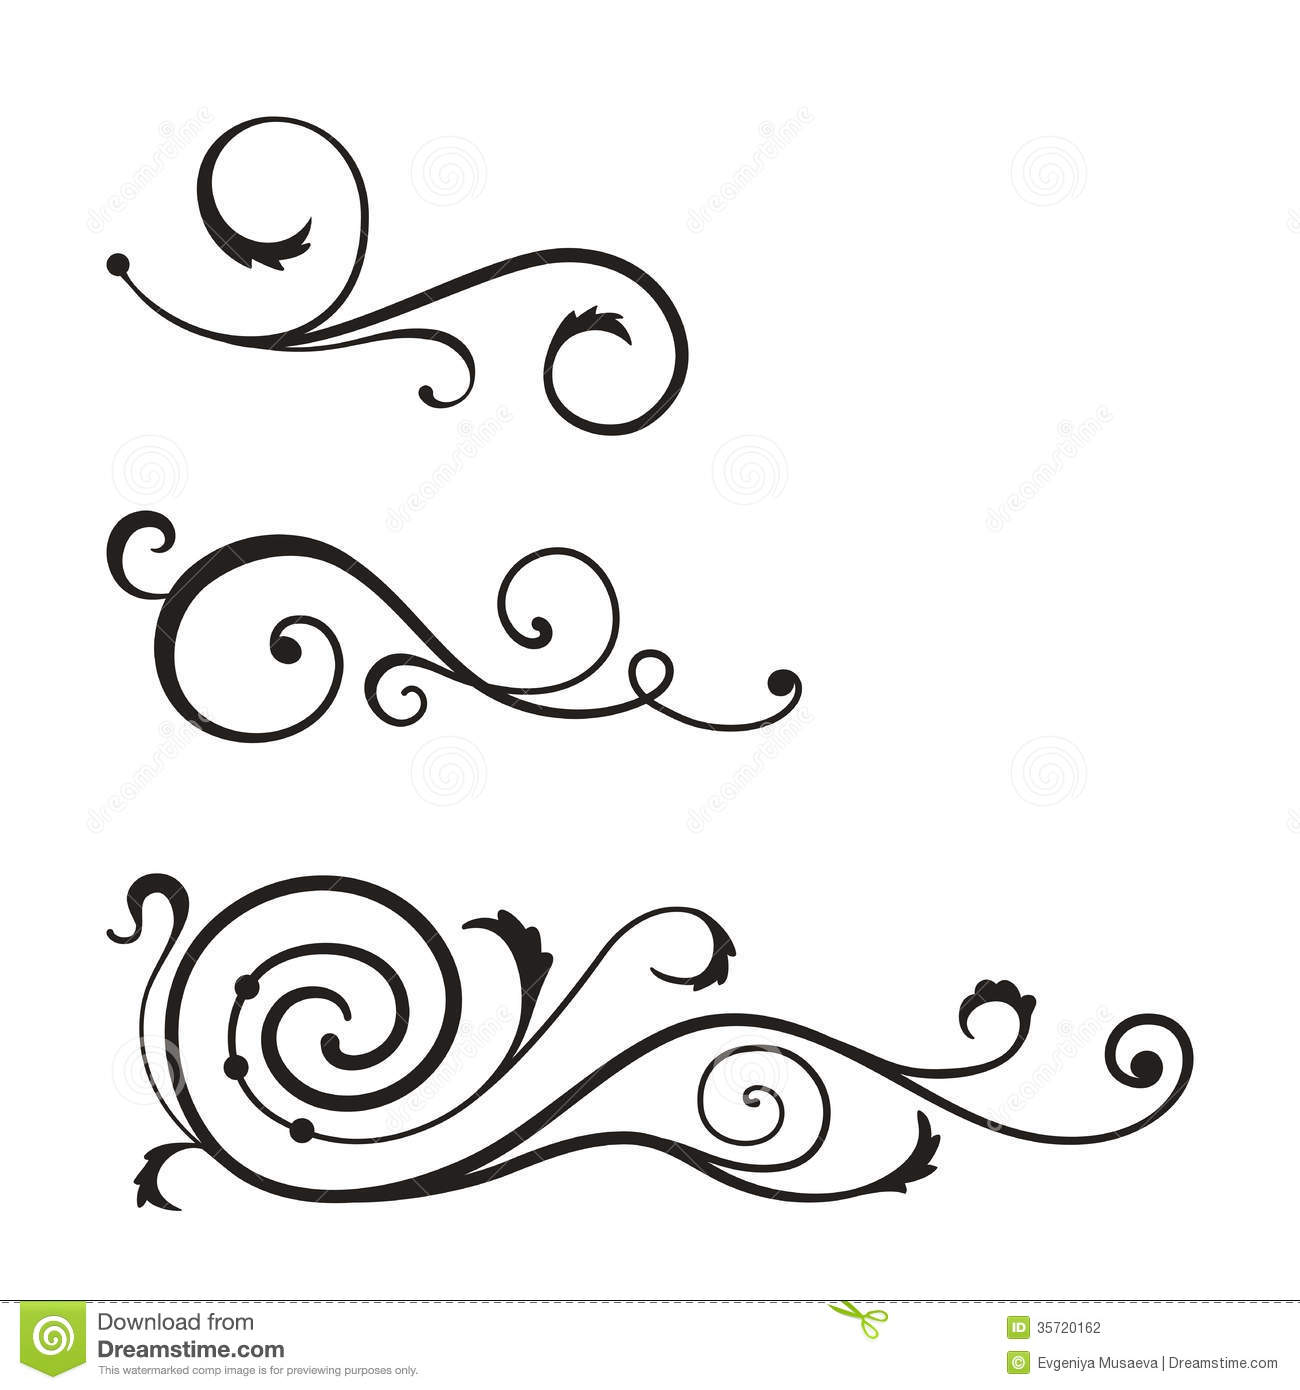 request  challenge for shapes paint net discussion and swirl vector art swirl vector background